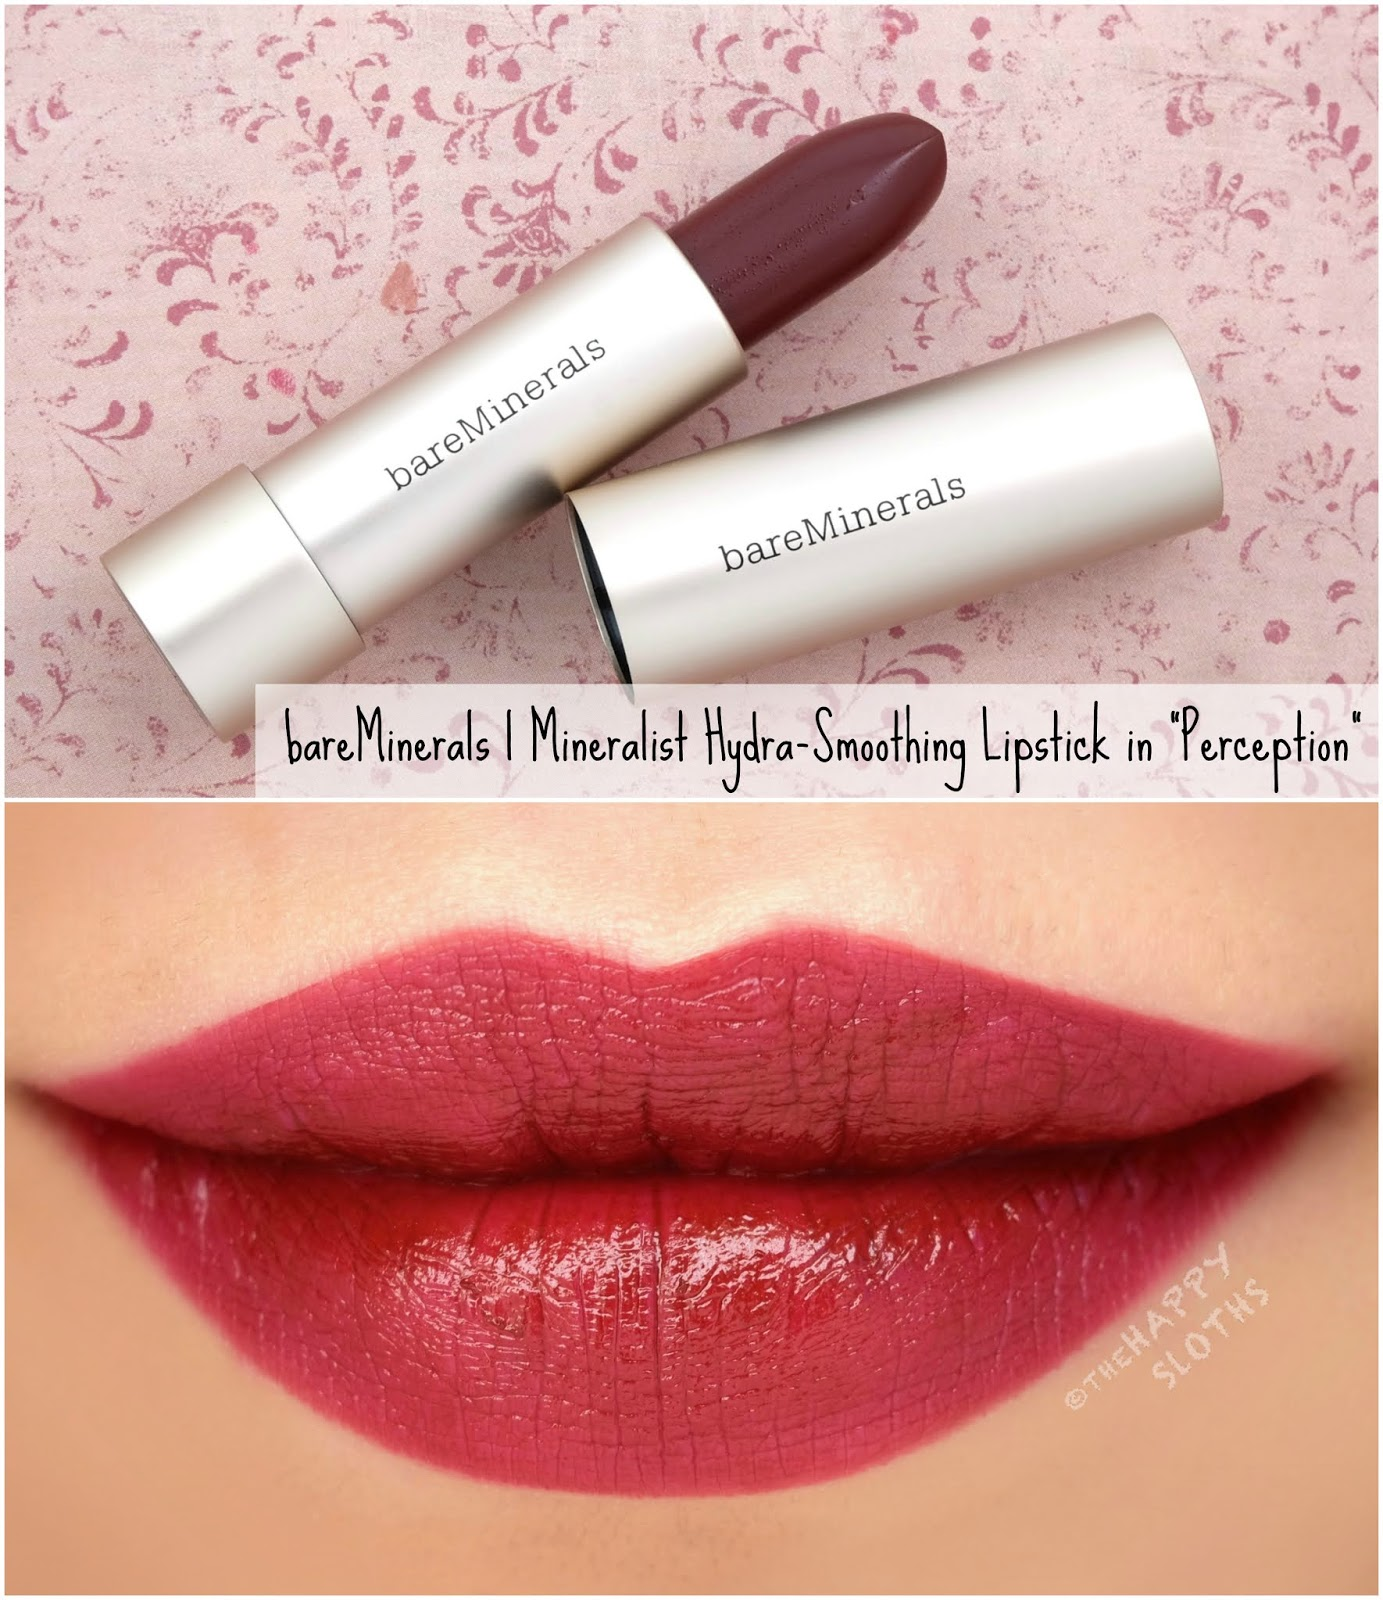 "bareMinerals | Mineralist Hydra-Smoothing Lipstick in ""Perception"": Review and Swatches"